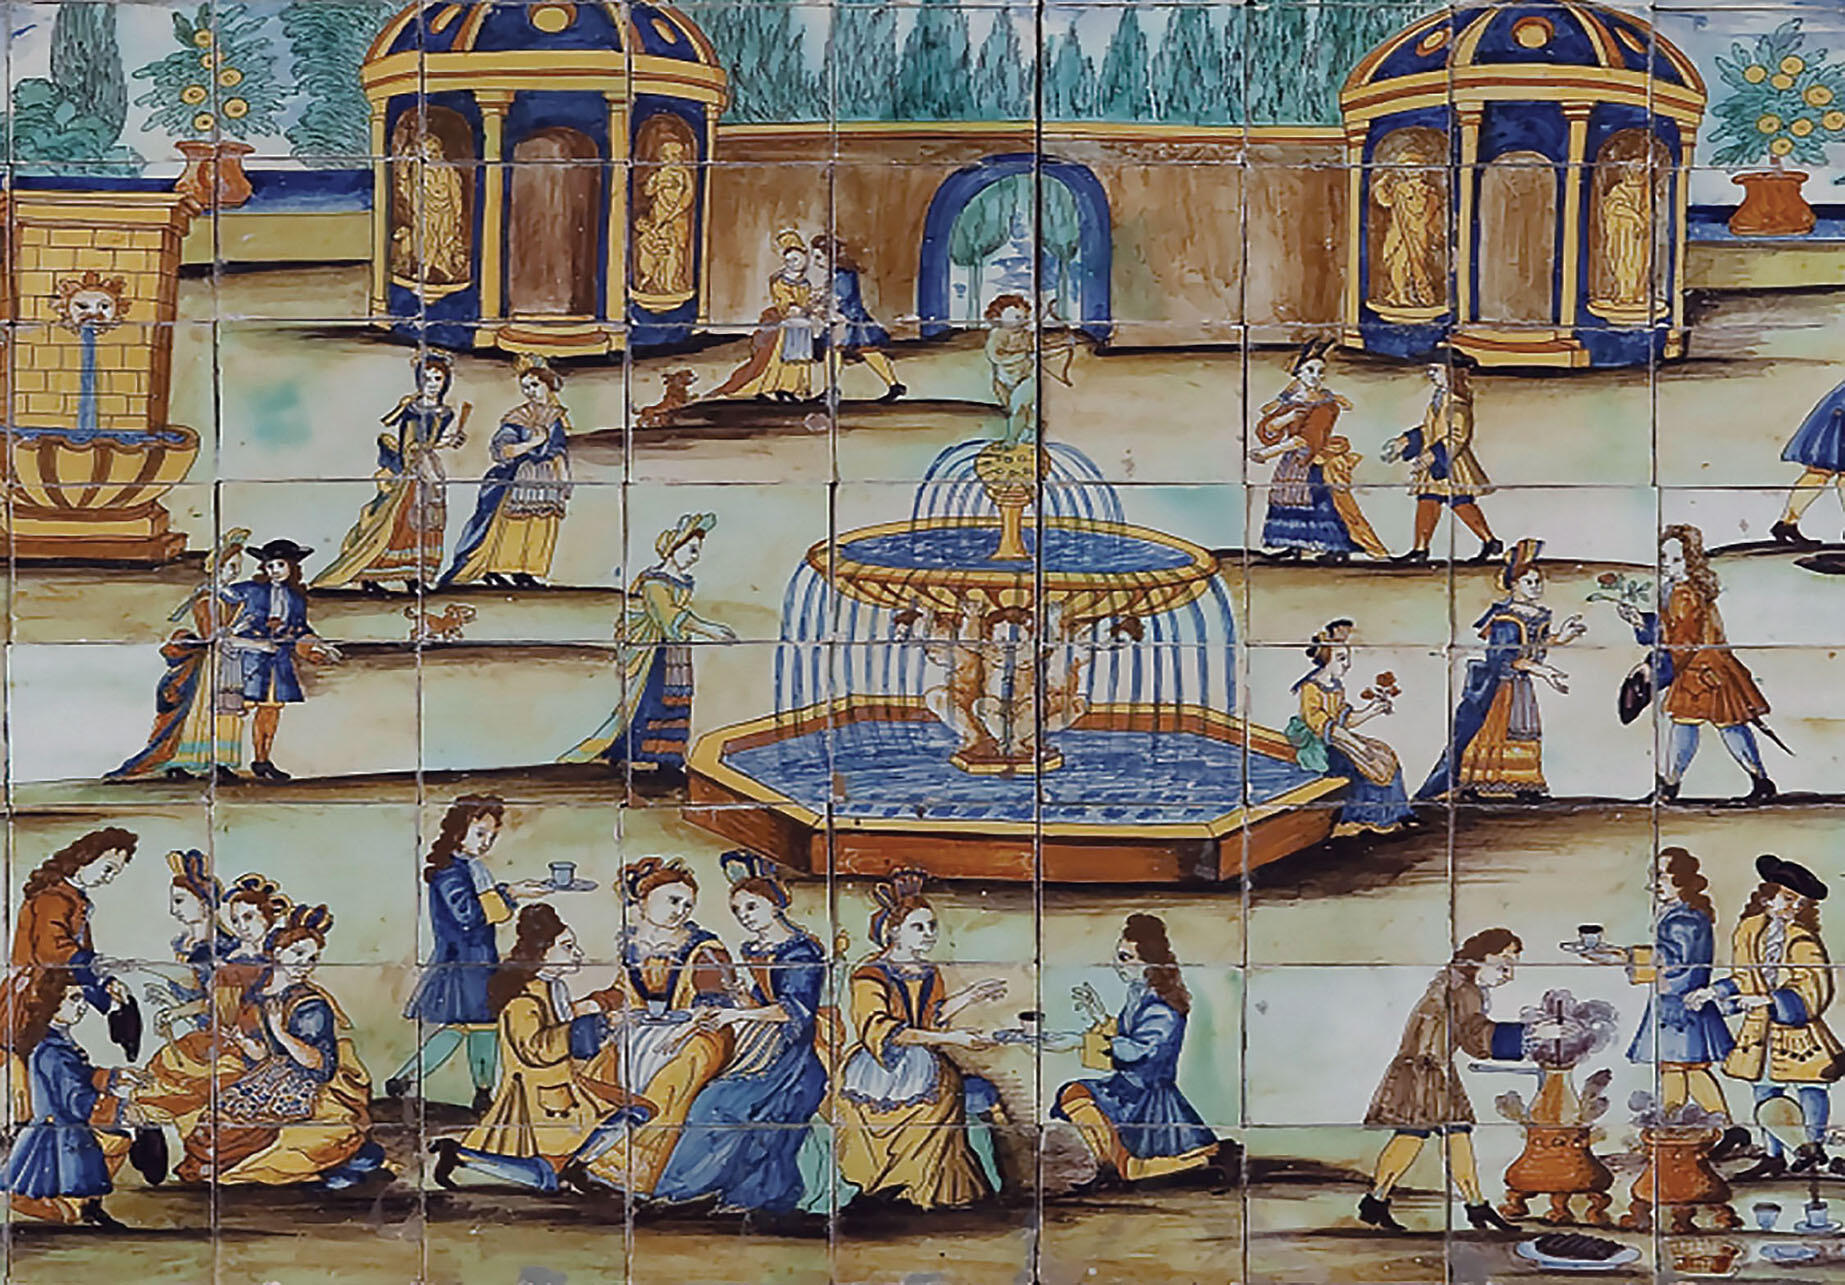 Painted blue and white tiles show scenes of chocolate drinking in Spain in the early 18th century. (Photo courtesy of the Collection of the Museo de Cerámica de Barcelona, Museu del Disseny de Barcelona.)